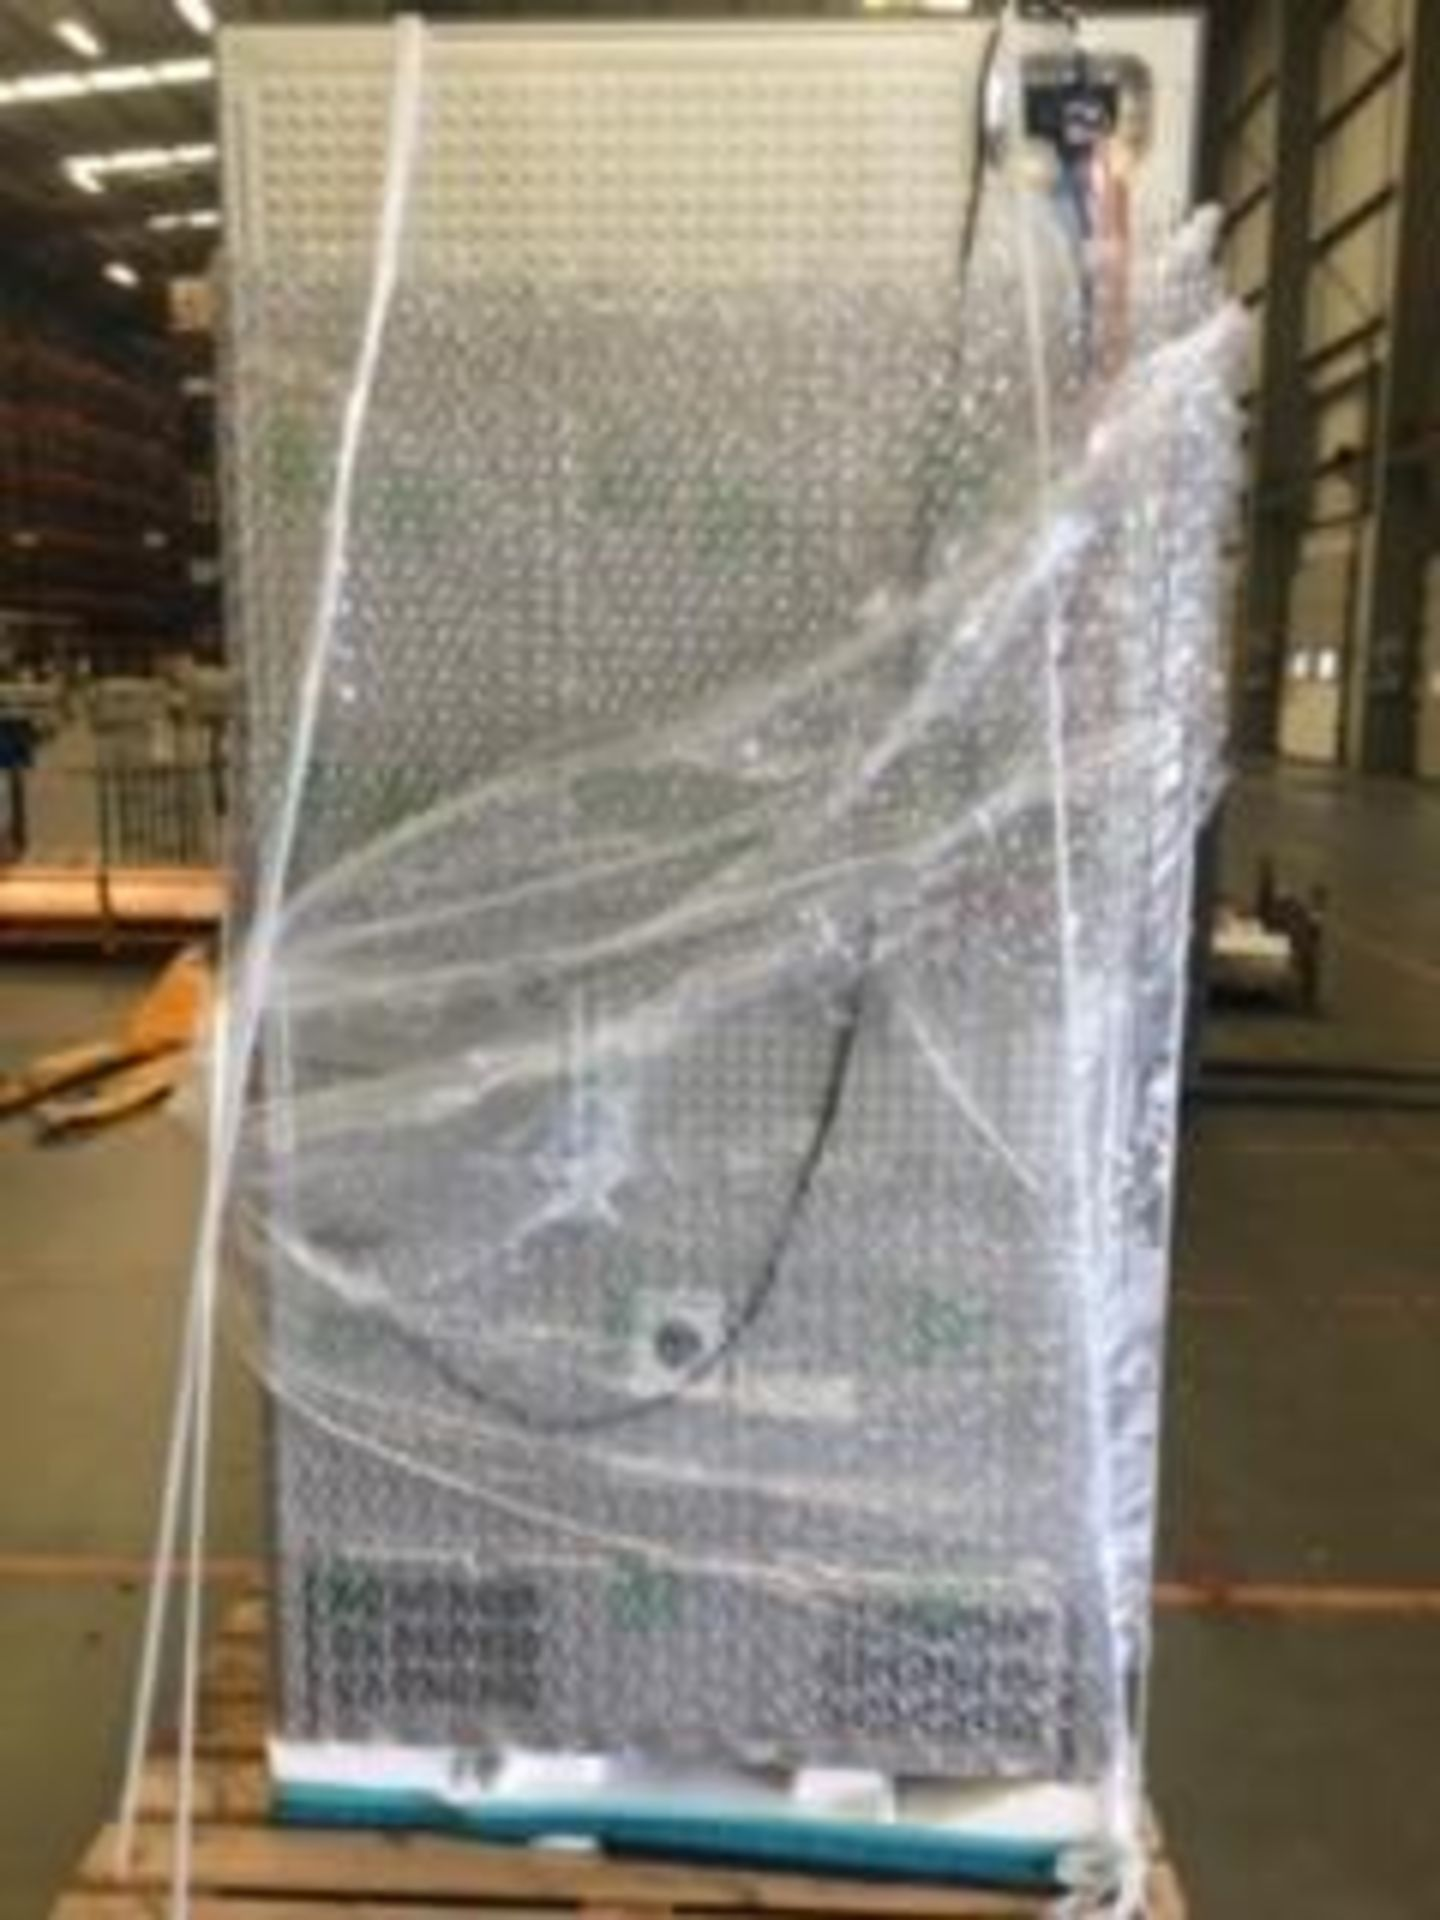 Pallet of 1 Samsung American Multi door. Latest selling price £3,799.99 - Image 9 of 9